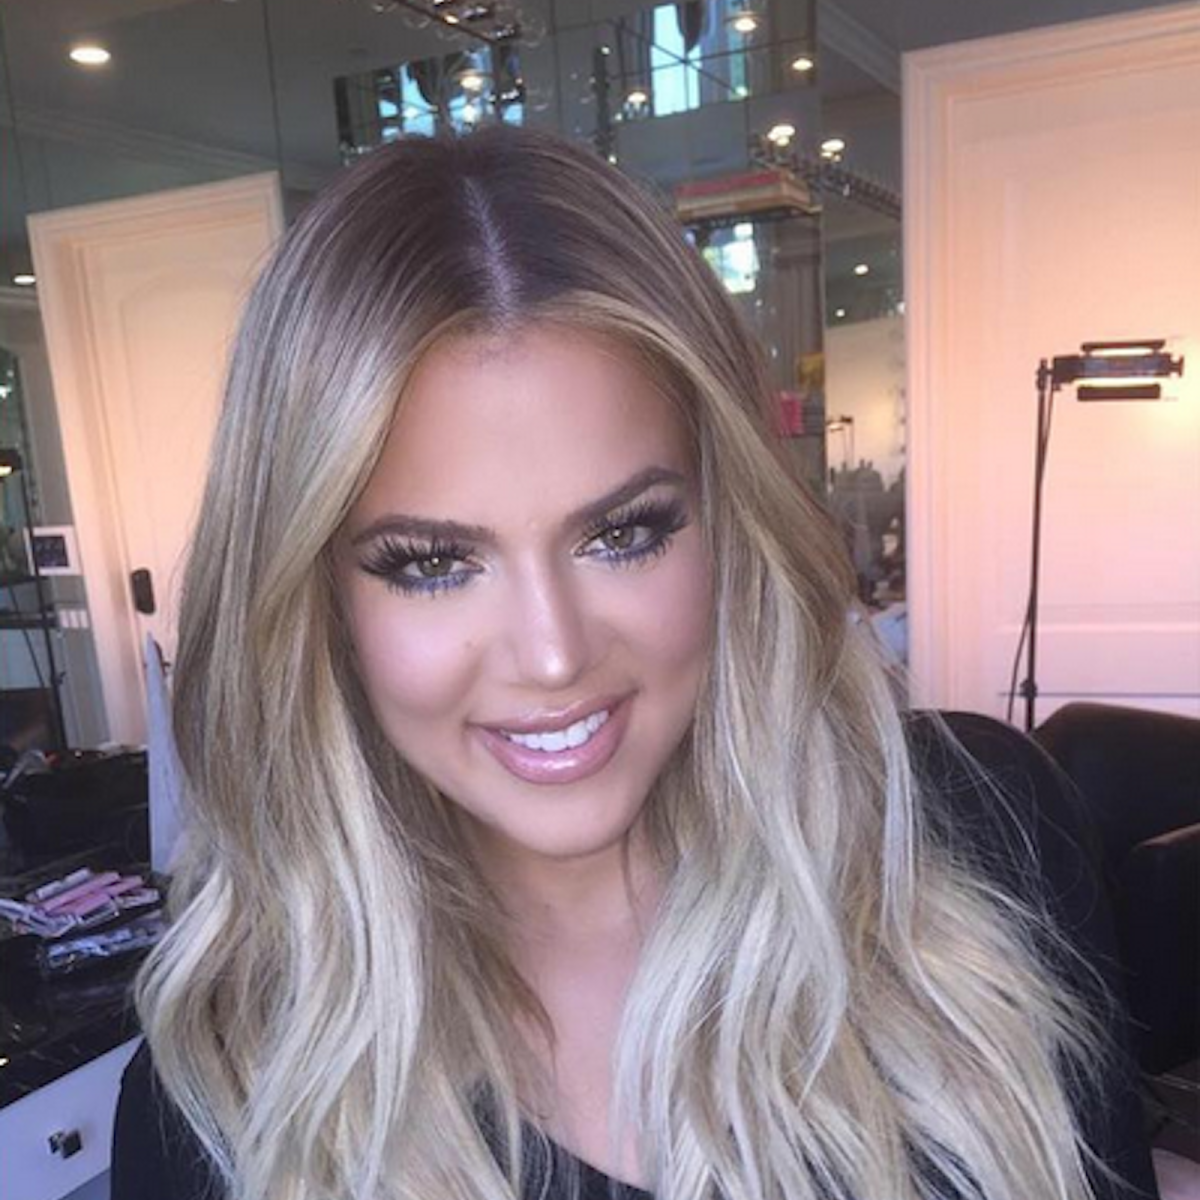 Houston, Khloe Kardashian, July 2015